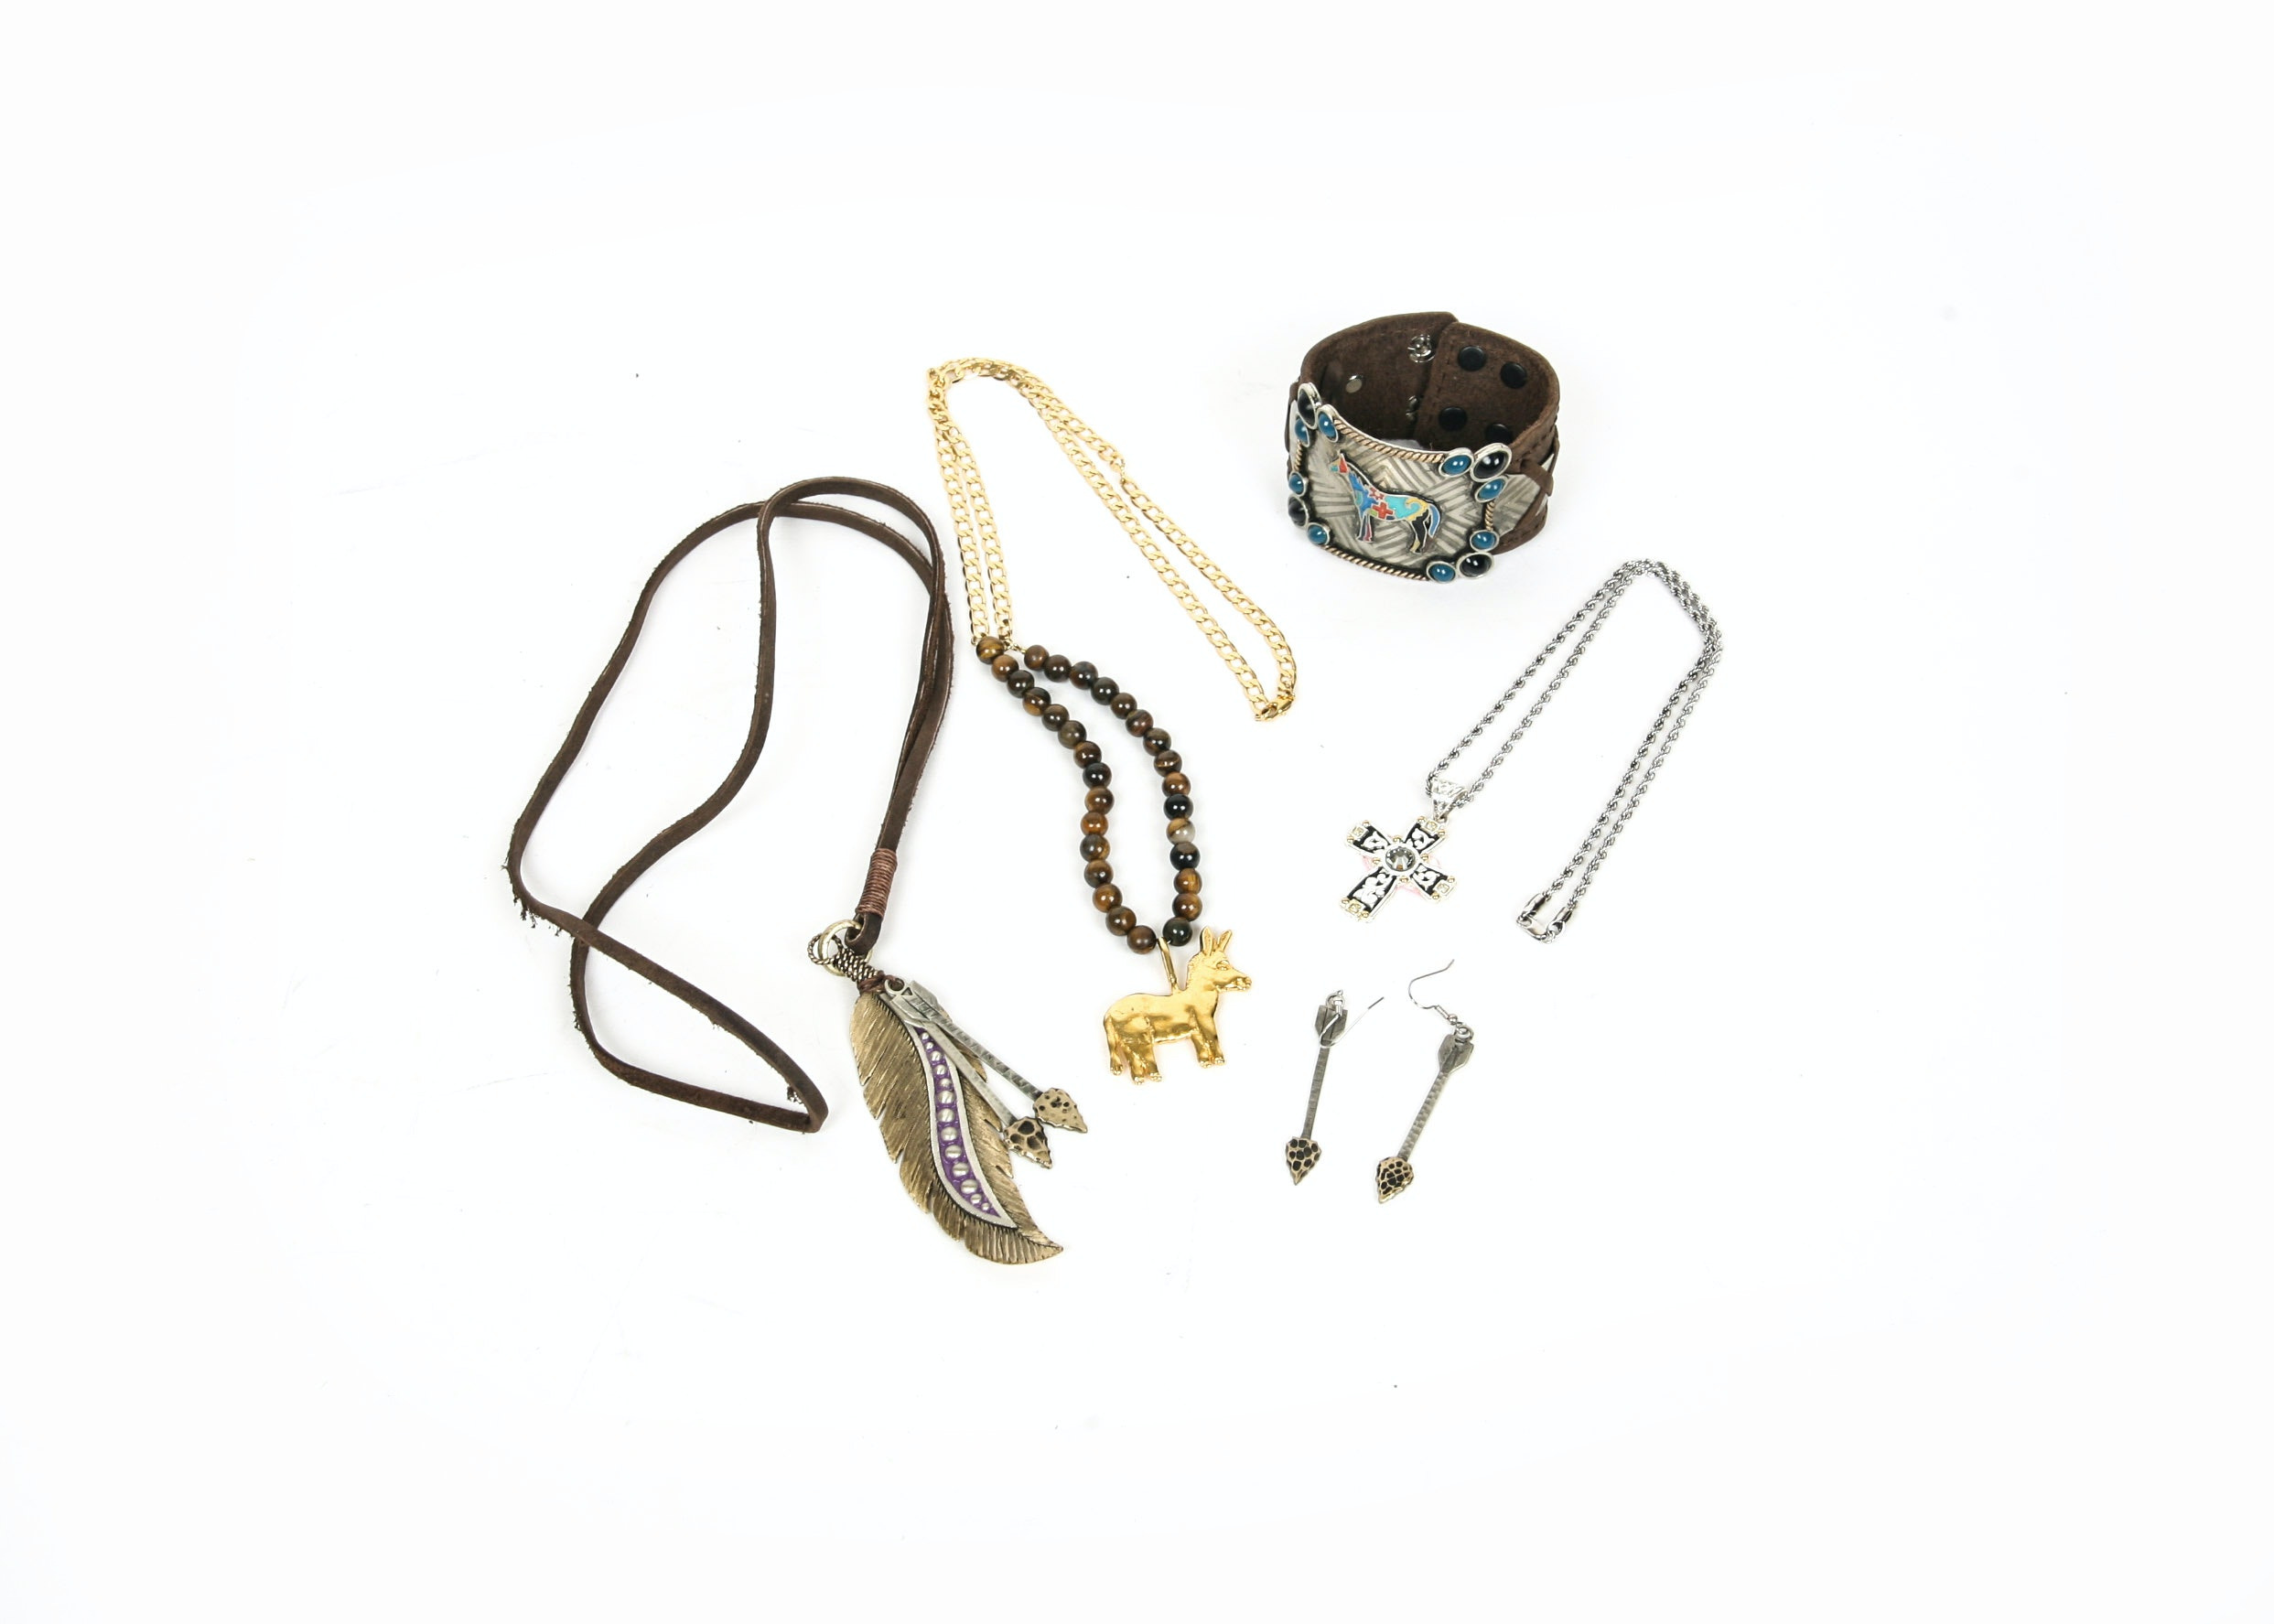 Collection of Western Jewelry and Accessories